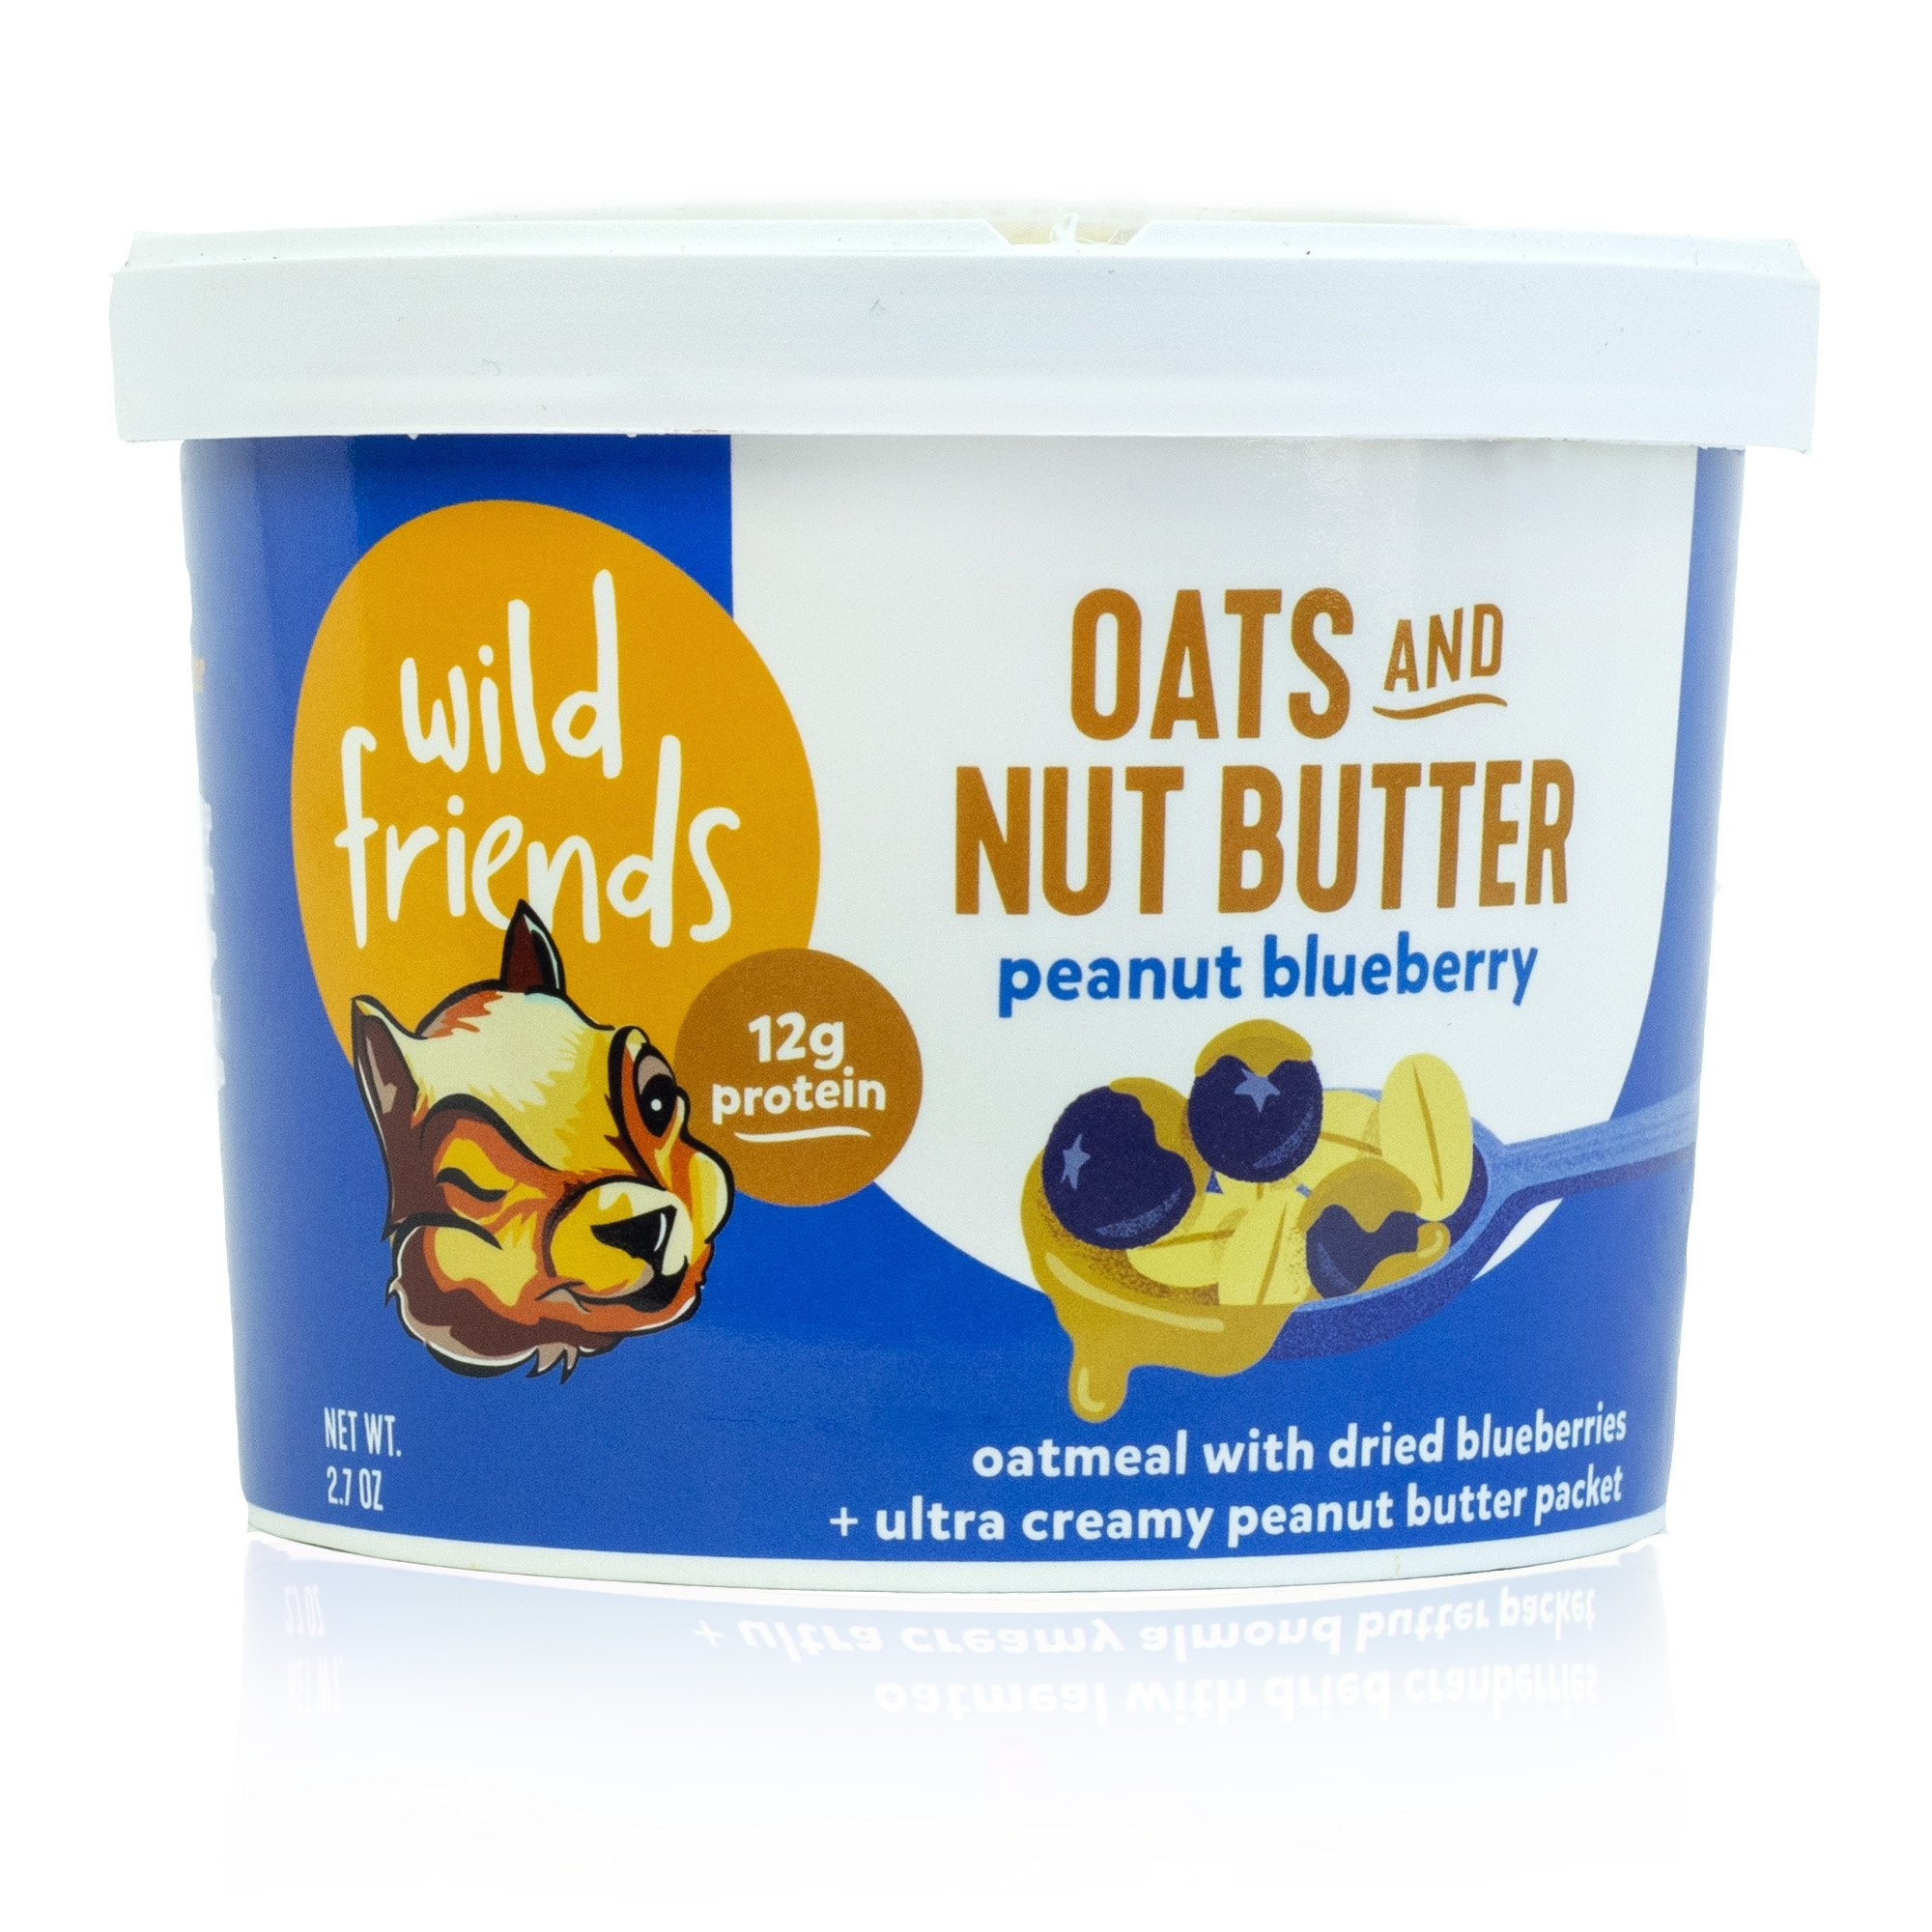 Wild Friends Nut Butter Oats - Blueberry Peanut Butter